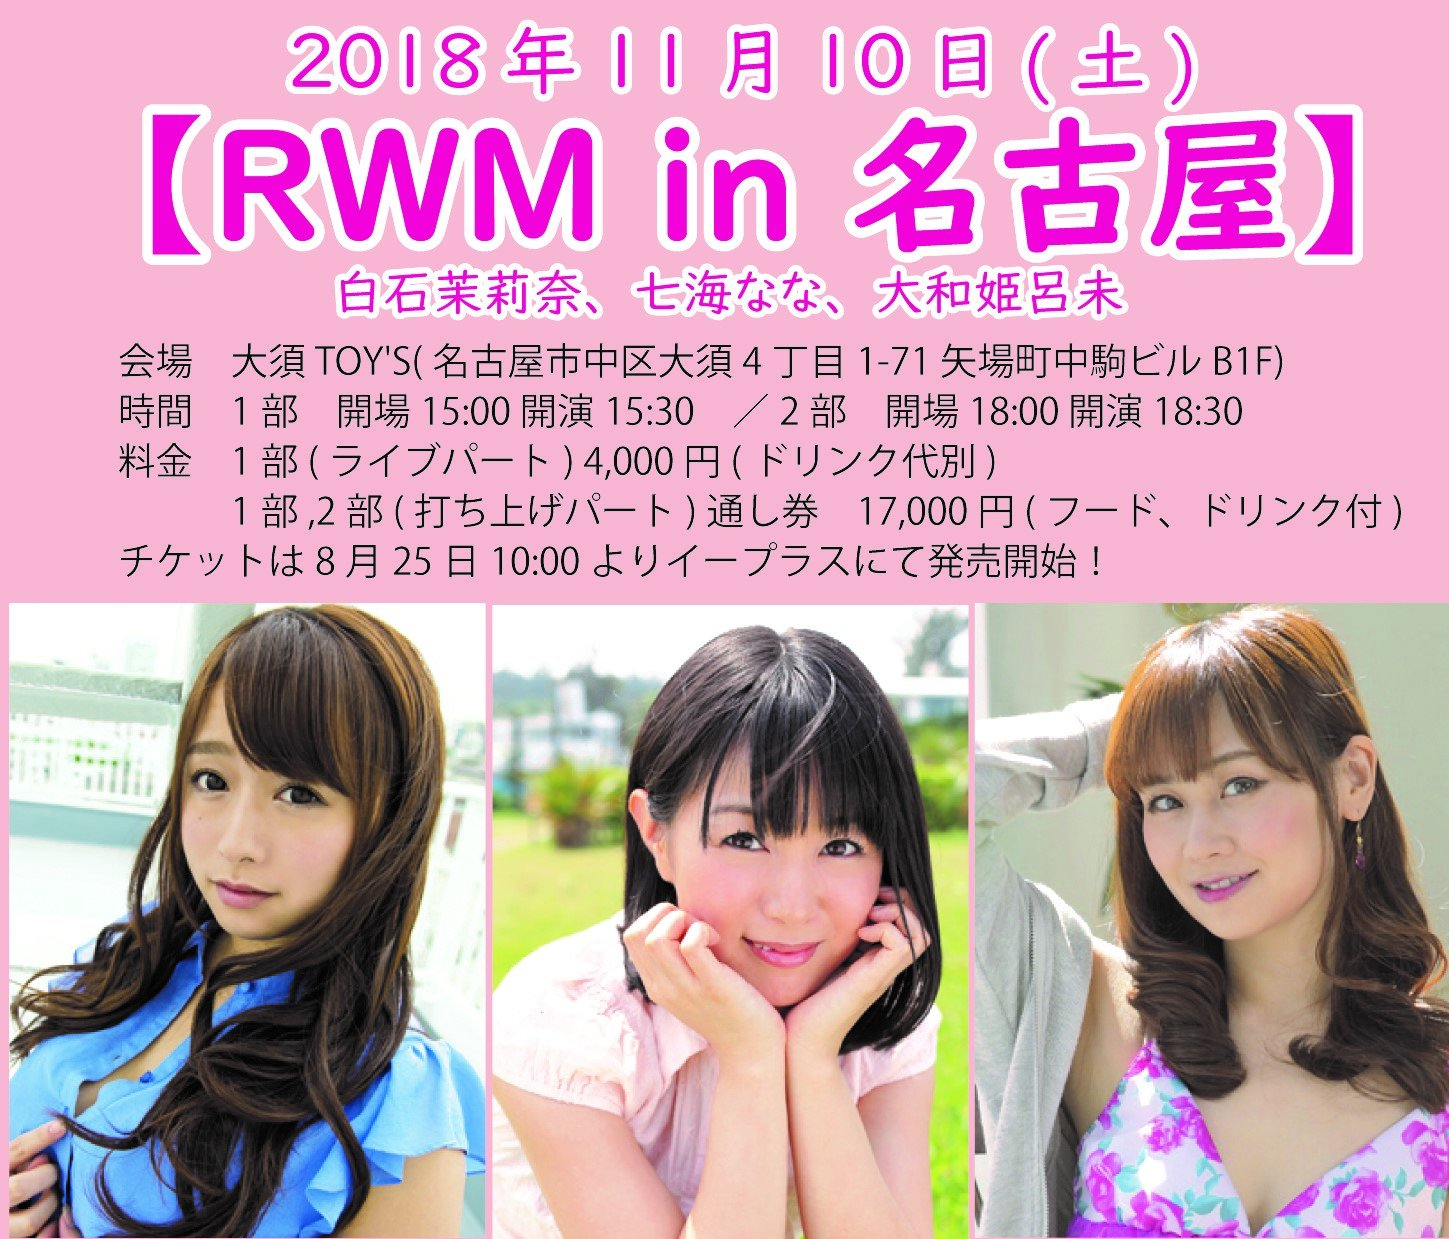 RWM in 名古屋